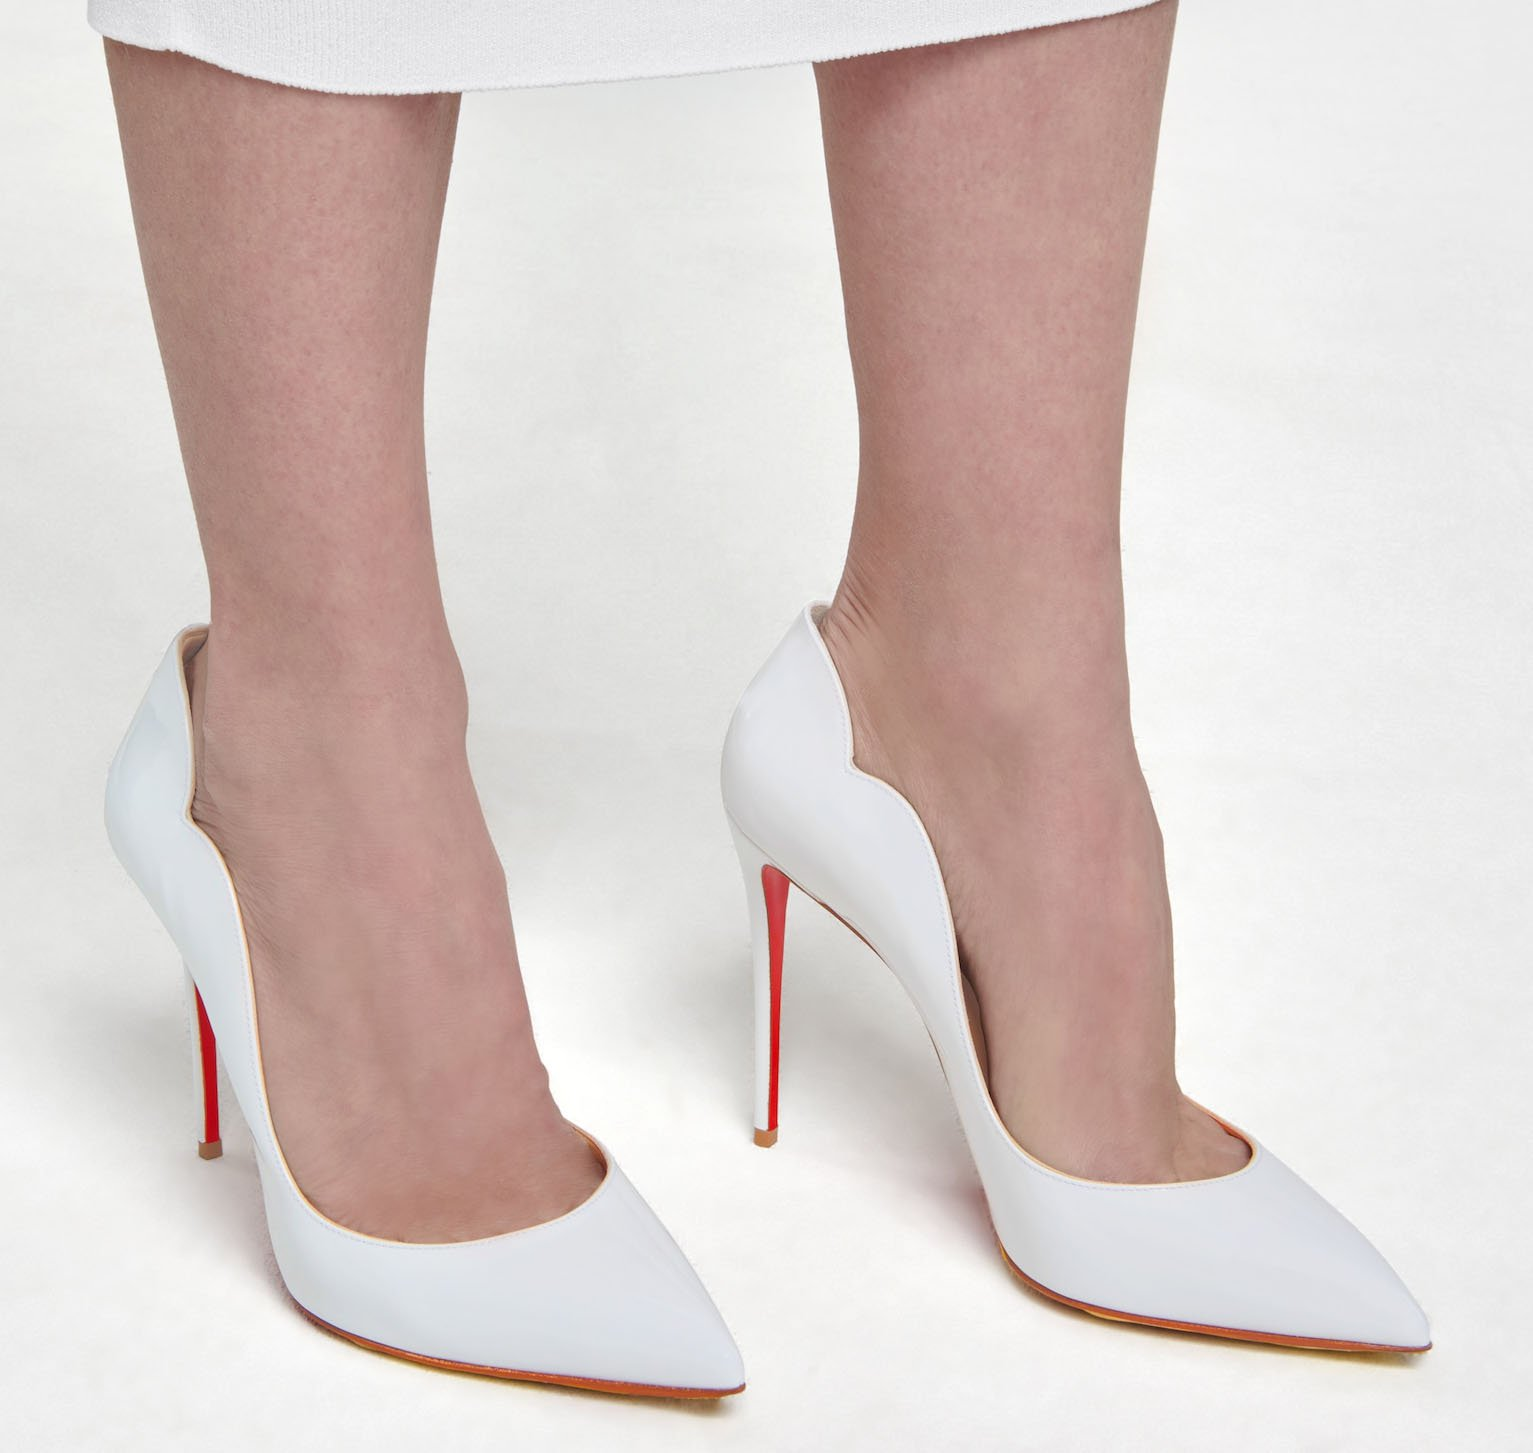 Christian Louboutin's Hot Chick is a modern take take on the classic pump silhouette with its notched scalloped collar